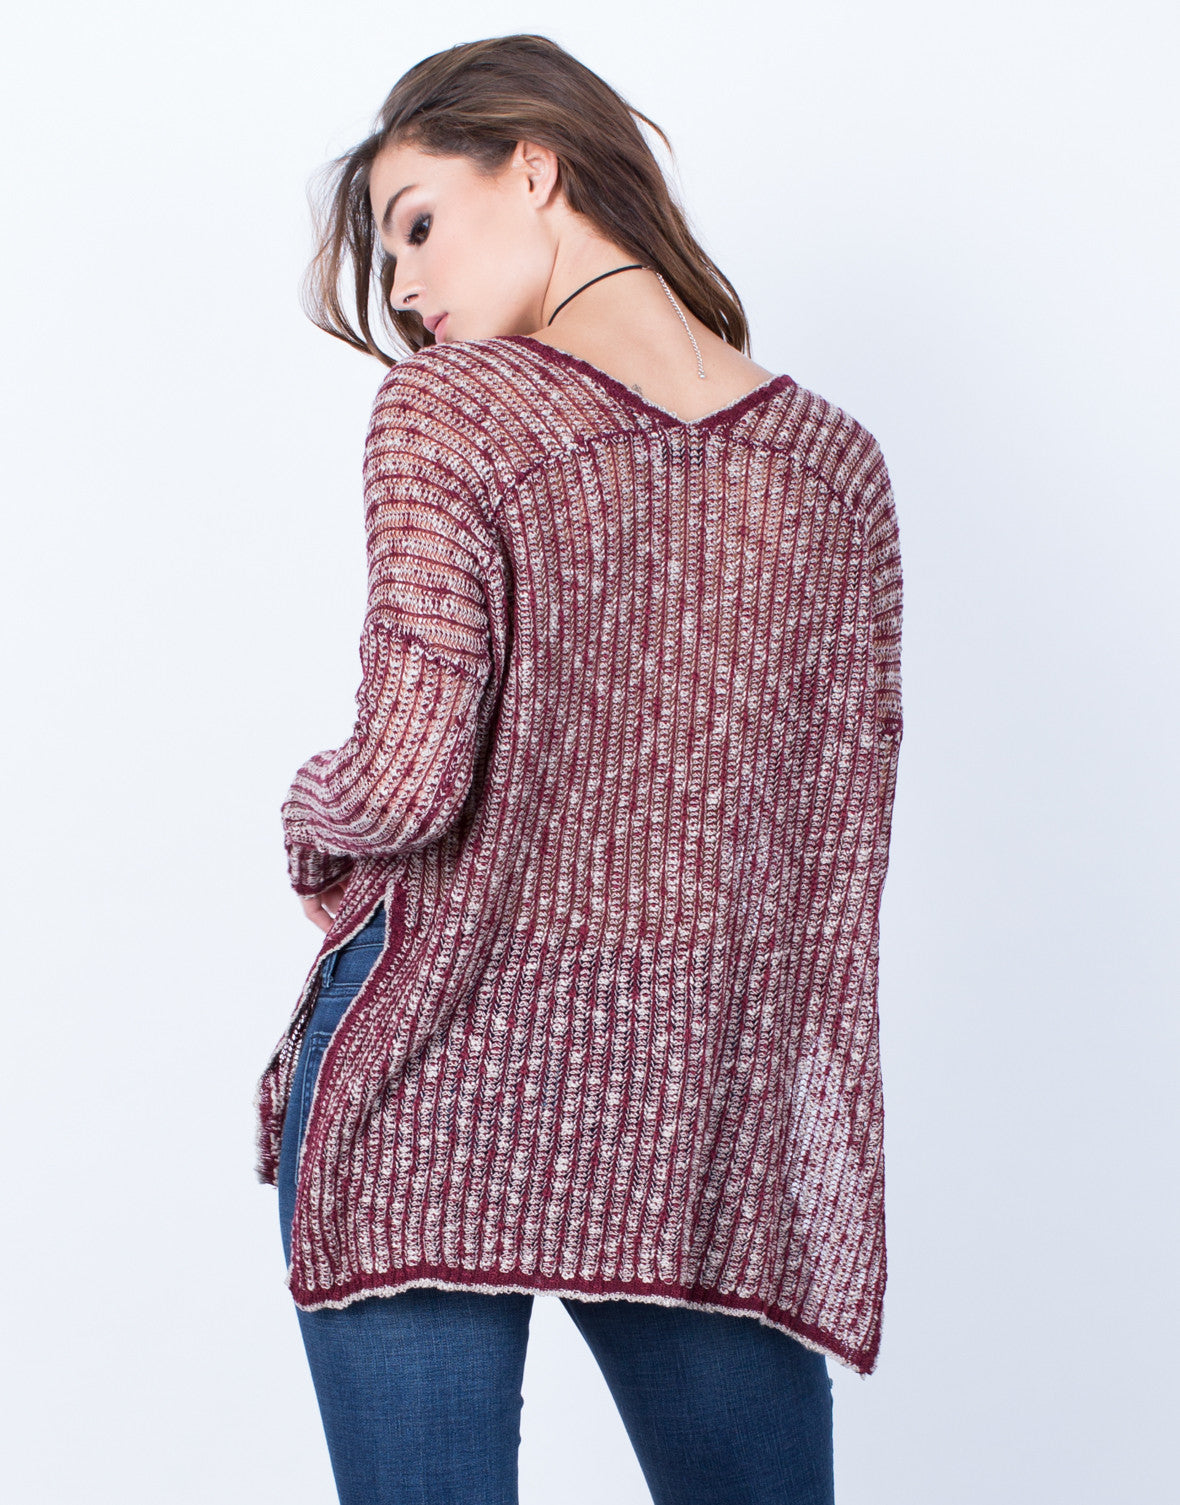 Back View of Mixed Knit Sweater